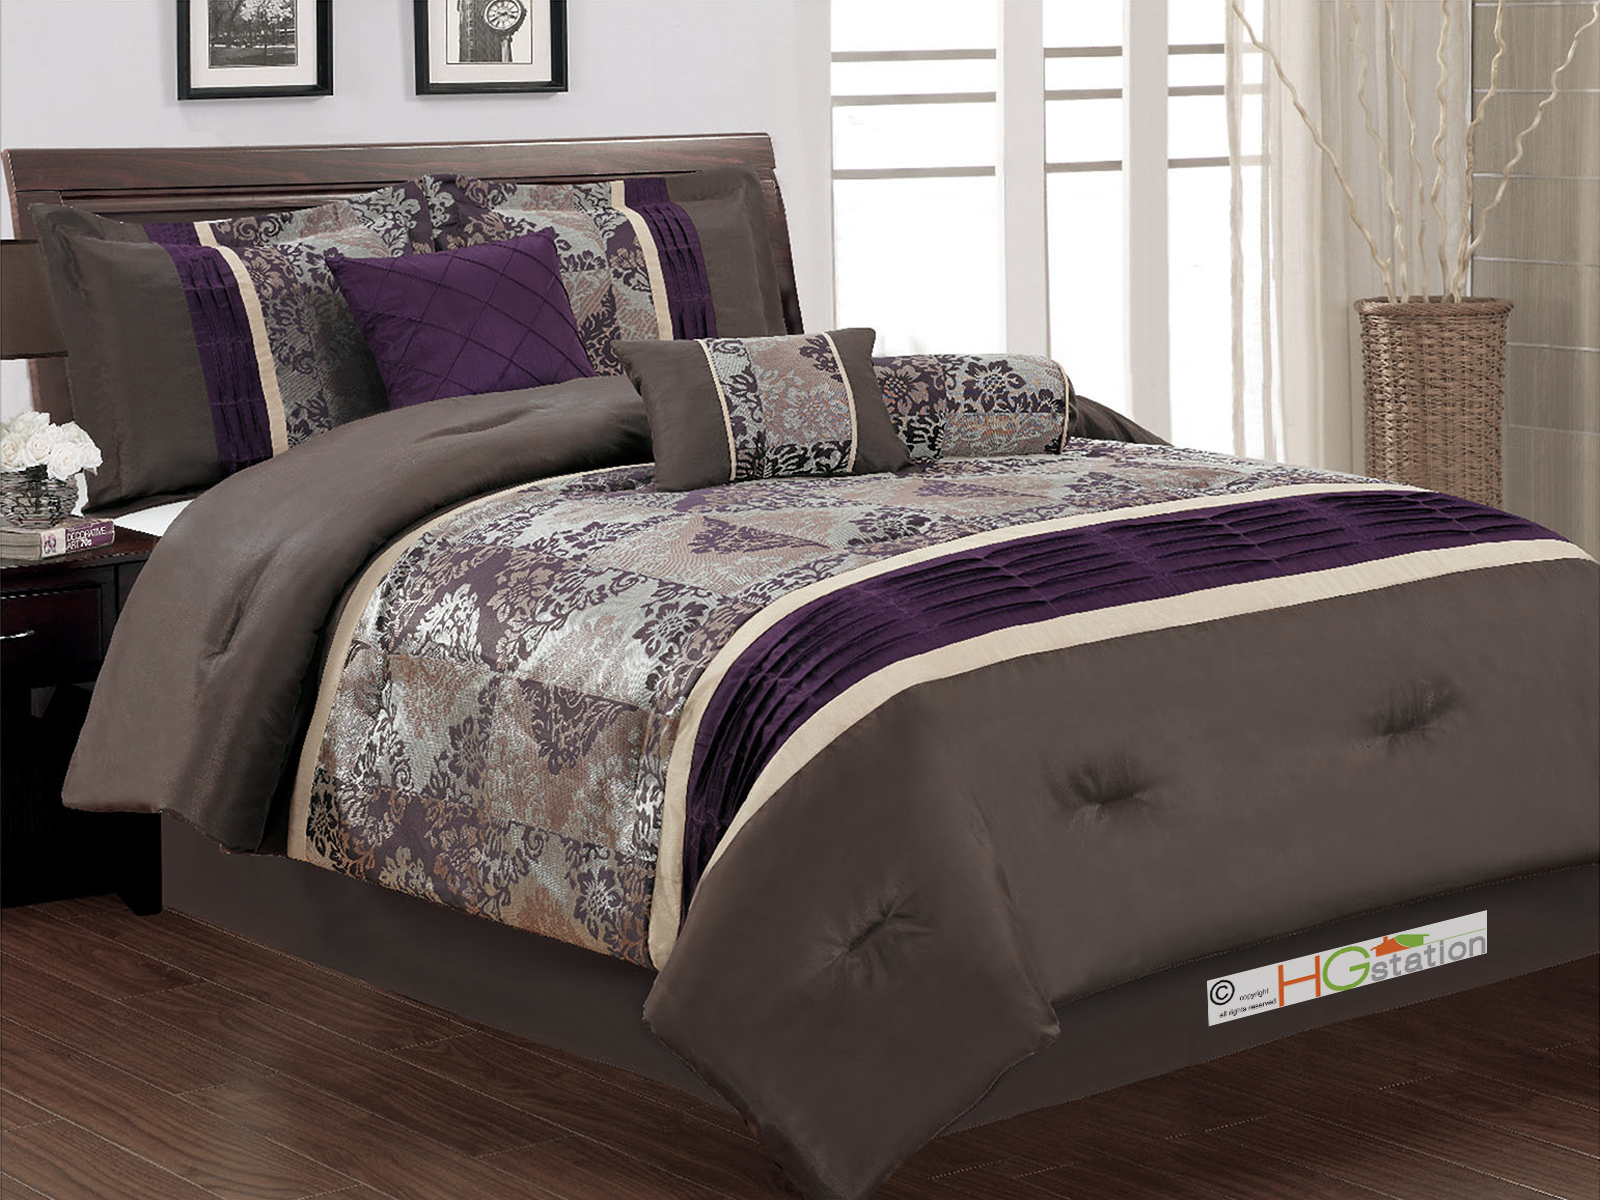 7-Pc Floral Damask Jacquard Patchwork Pleated Comforter